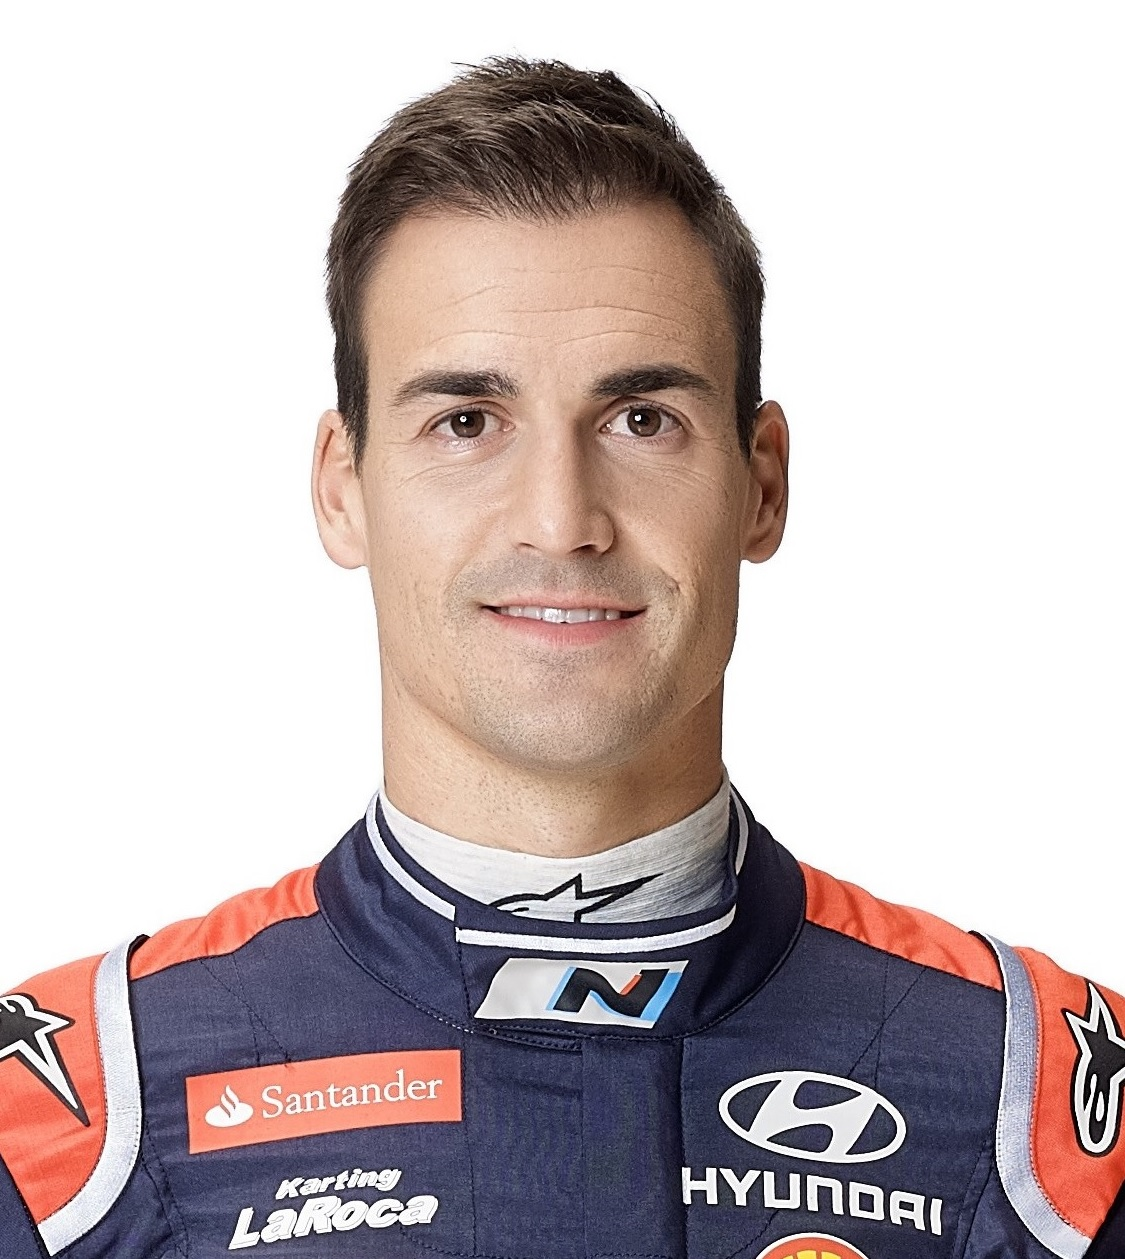 The 35-year old son of father (?) and mother(?) Dani Sordo in 2018 photo. Dani Sordo earned a  million dollar salary - leaving the net worth at 2.5 million in 2018